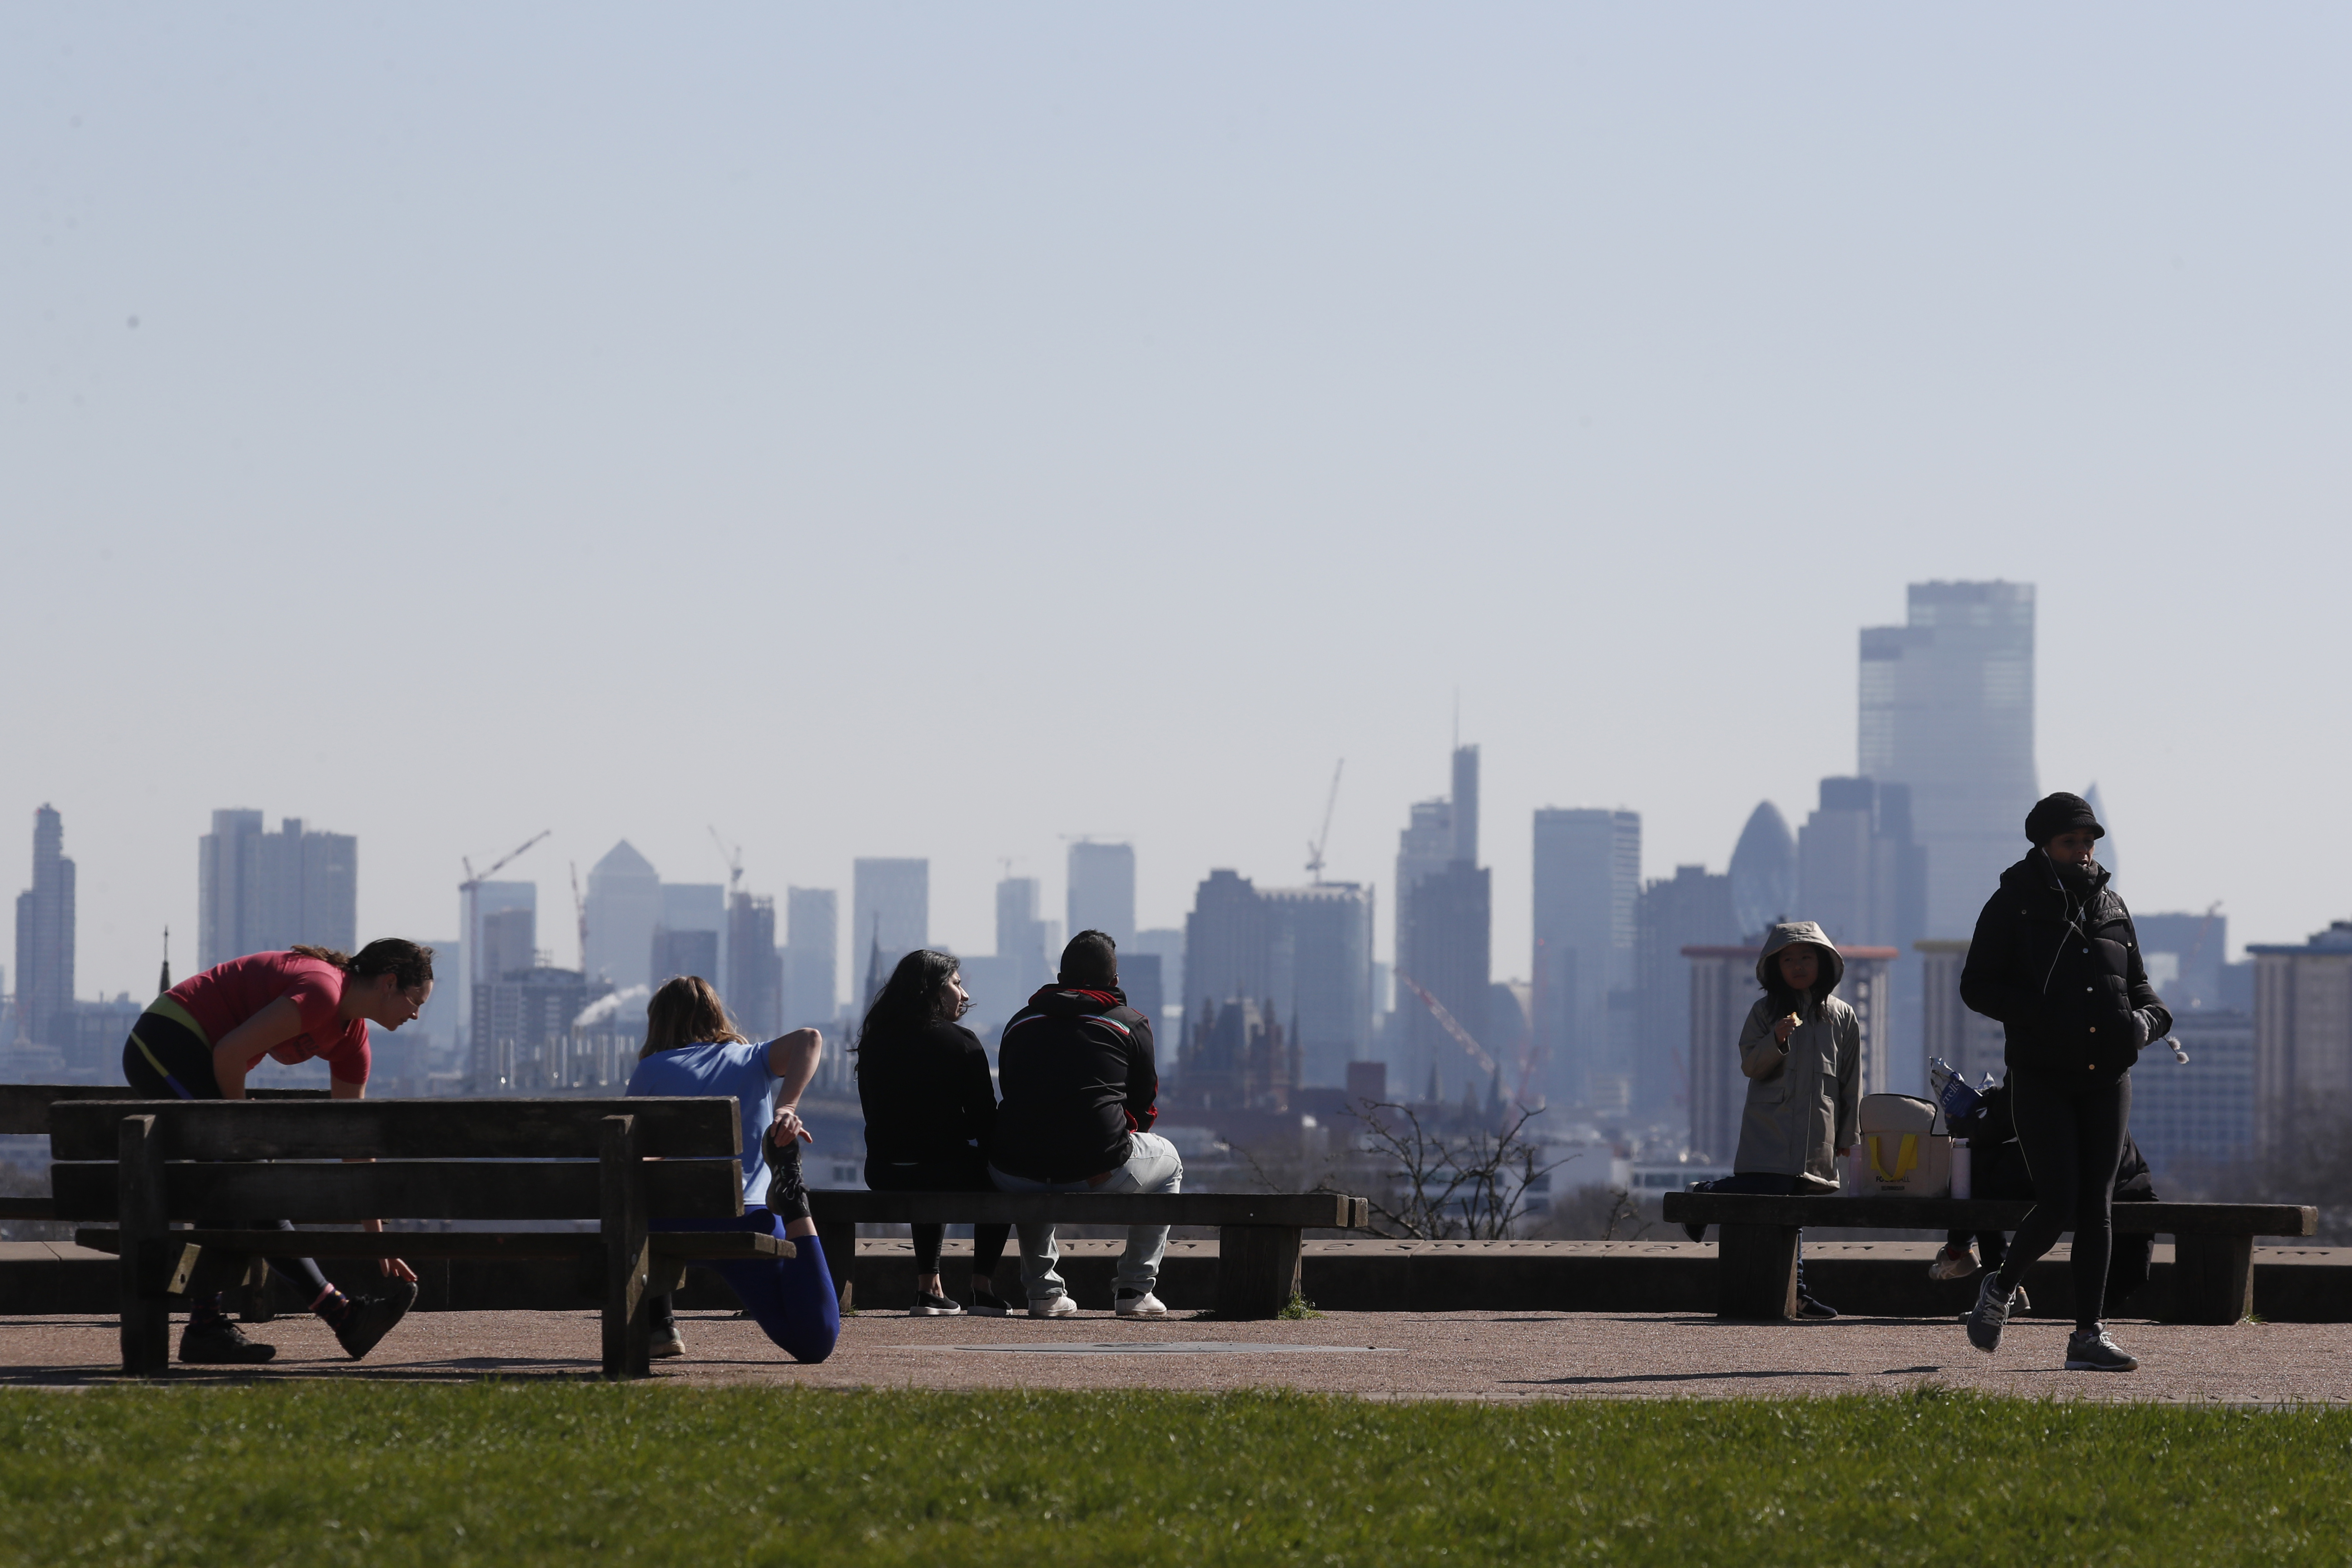 Pedestrians walk on Primrose Hill with the skyline of central London as a backdrop in London, Monday, March 23, 2020. The British government is encouraging people to practice social distancing to help prohibit the spread of Coronavirus, further restrictions may be imposed if the public do not adhere to their advice. For most people, the new coronavirus causes only mild or moderate symptoms, such as fever and cough. For some, especially older adults and people with existing health problems, it can cause more severe illness, including pneumonia. (AP Photo/Frank Augstein)